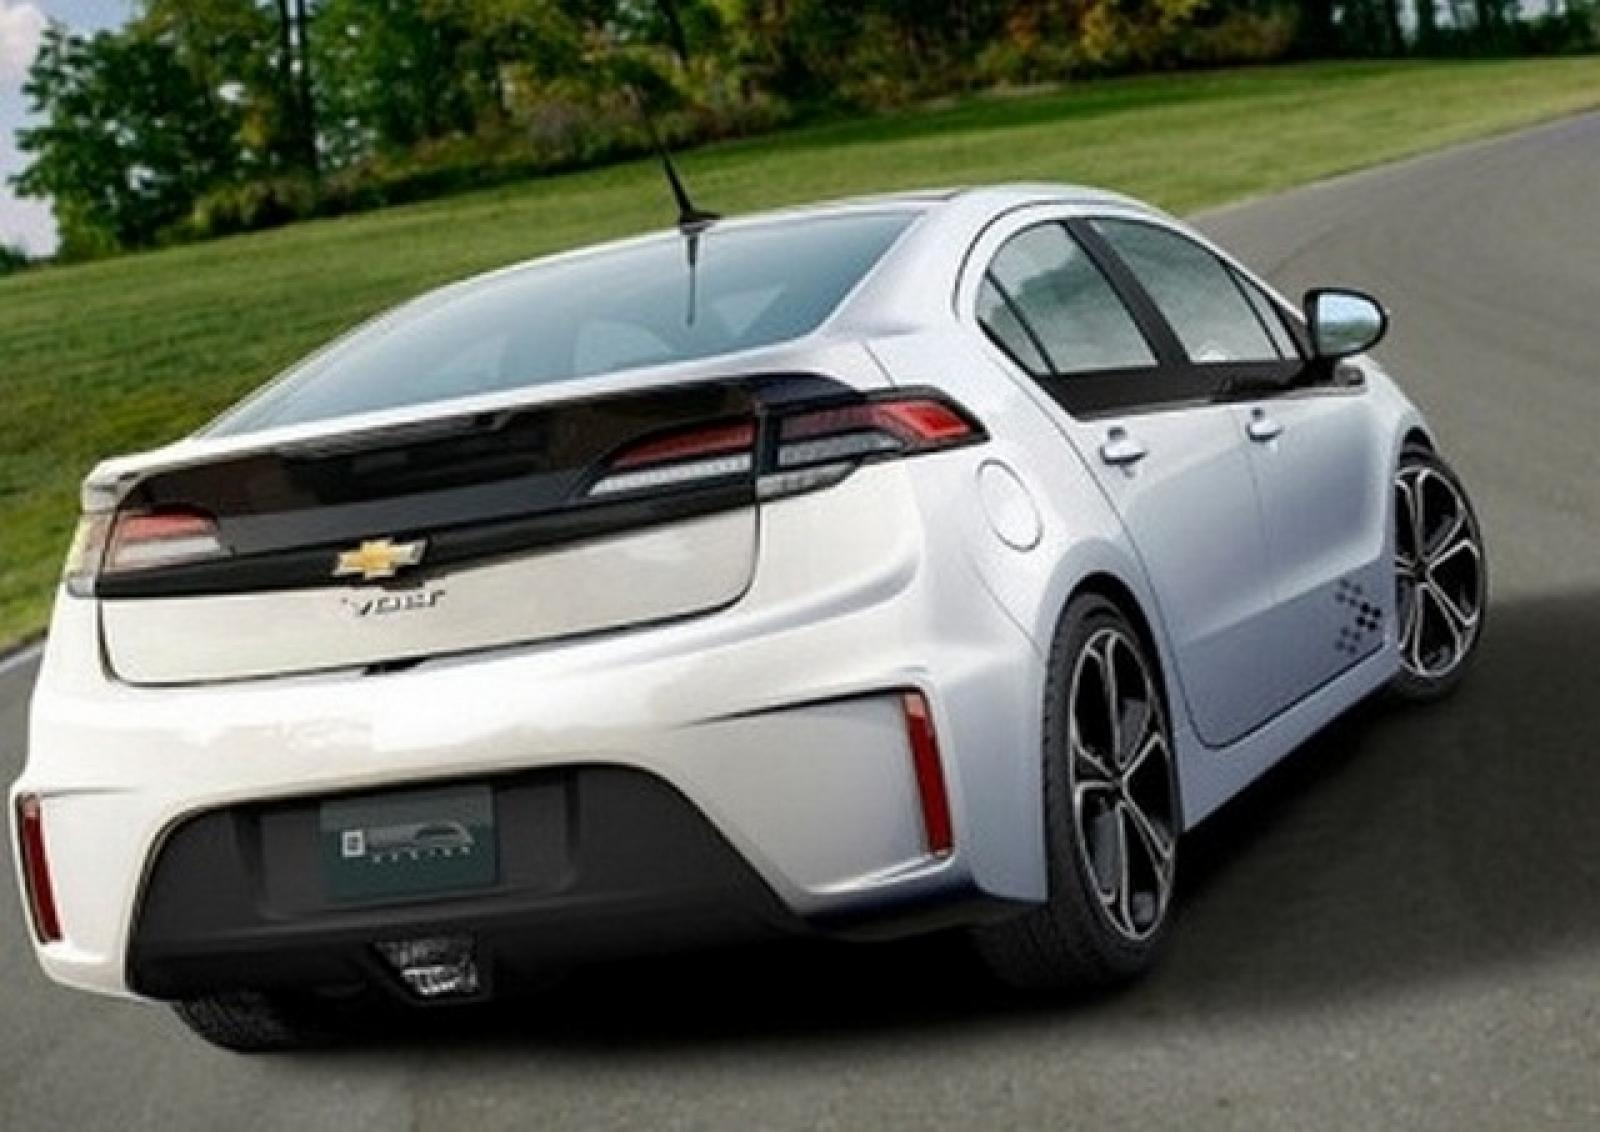 2015 chevrolet volt information and photos zombiedrive. Black Bedroom Furniture Sets. Home Design Ideas